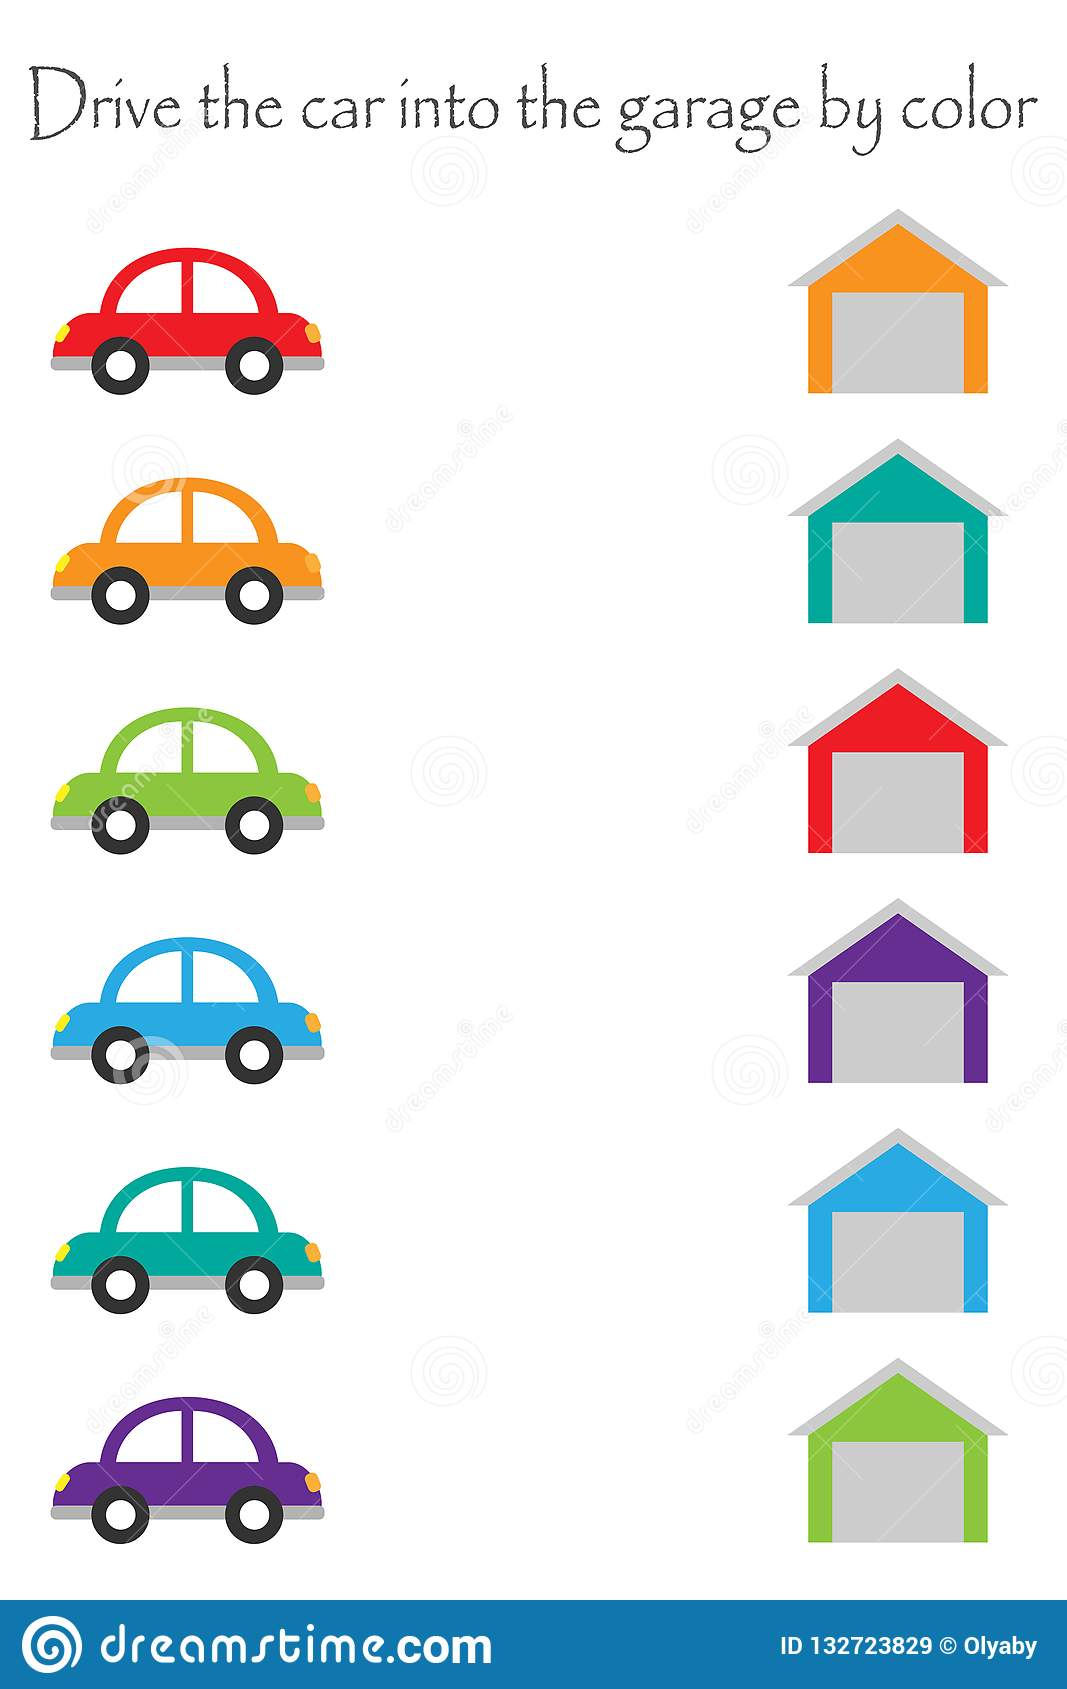 Drive Colorful Cars In Cartoon Style Into Garages By Color